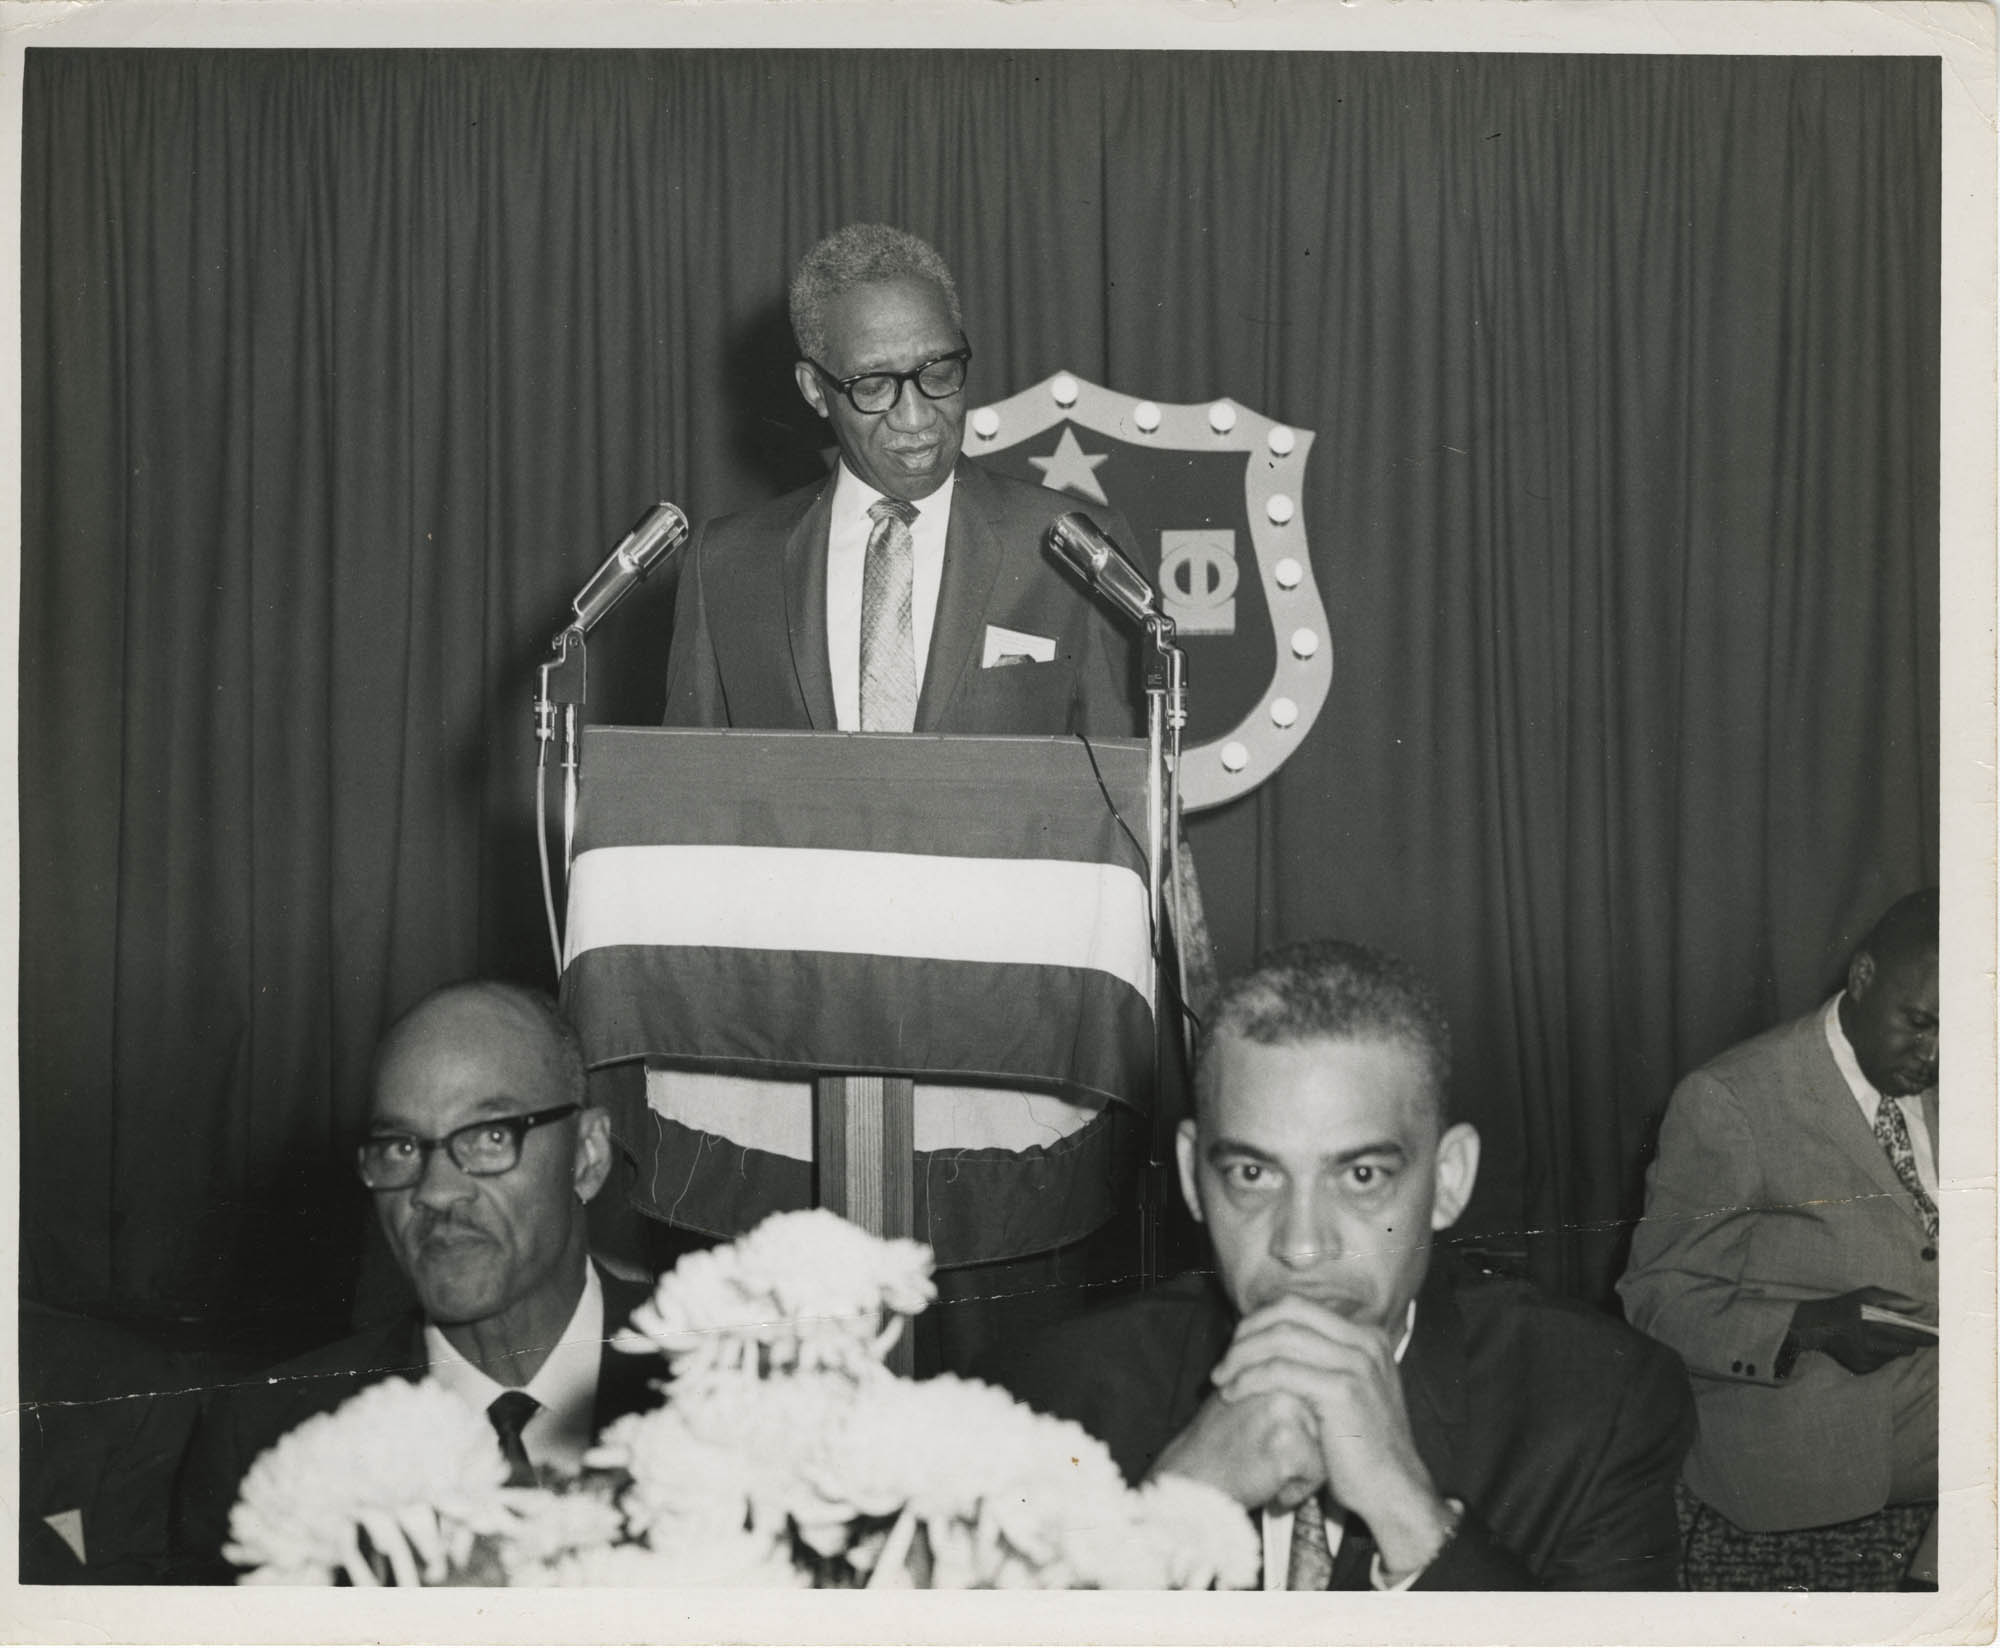 Photograph of Man Speaking at Event